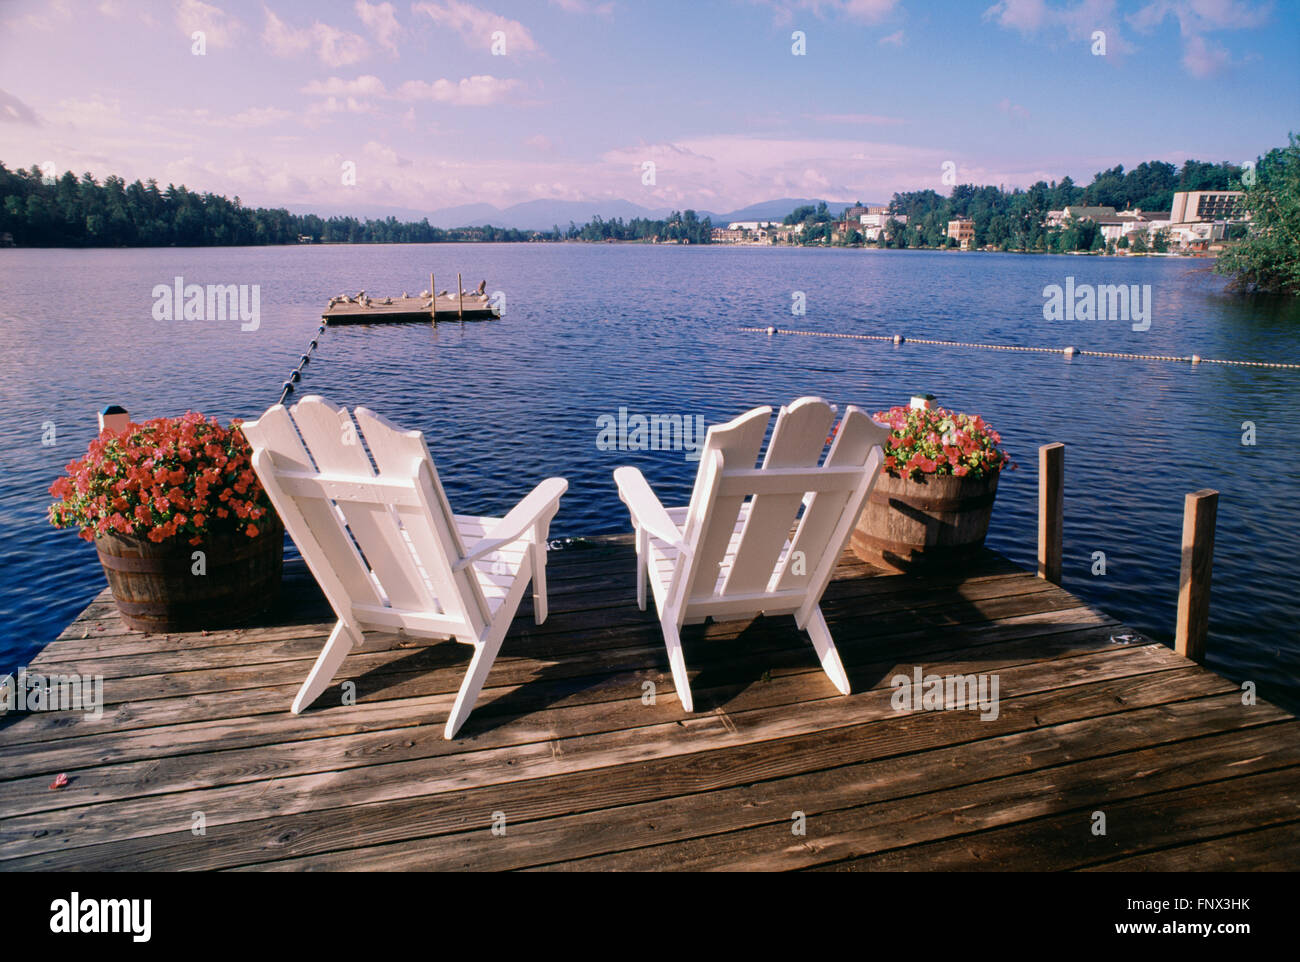 new river adirondack chairs rustic wood dining dock stock photos and